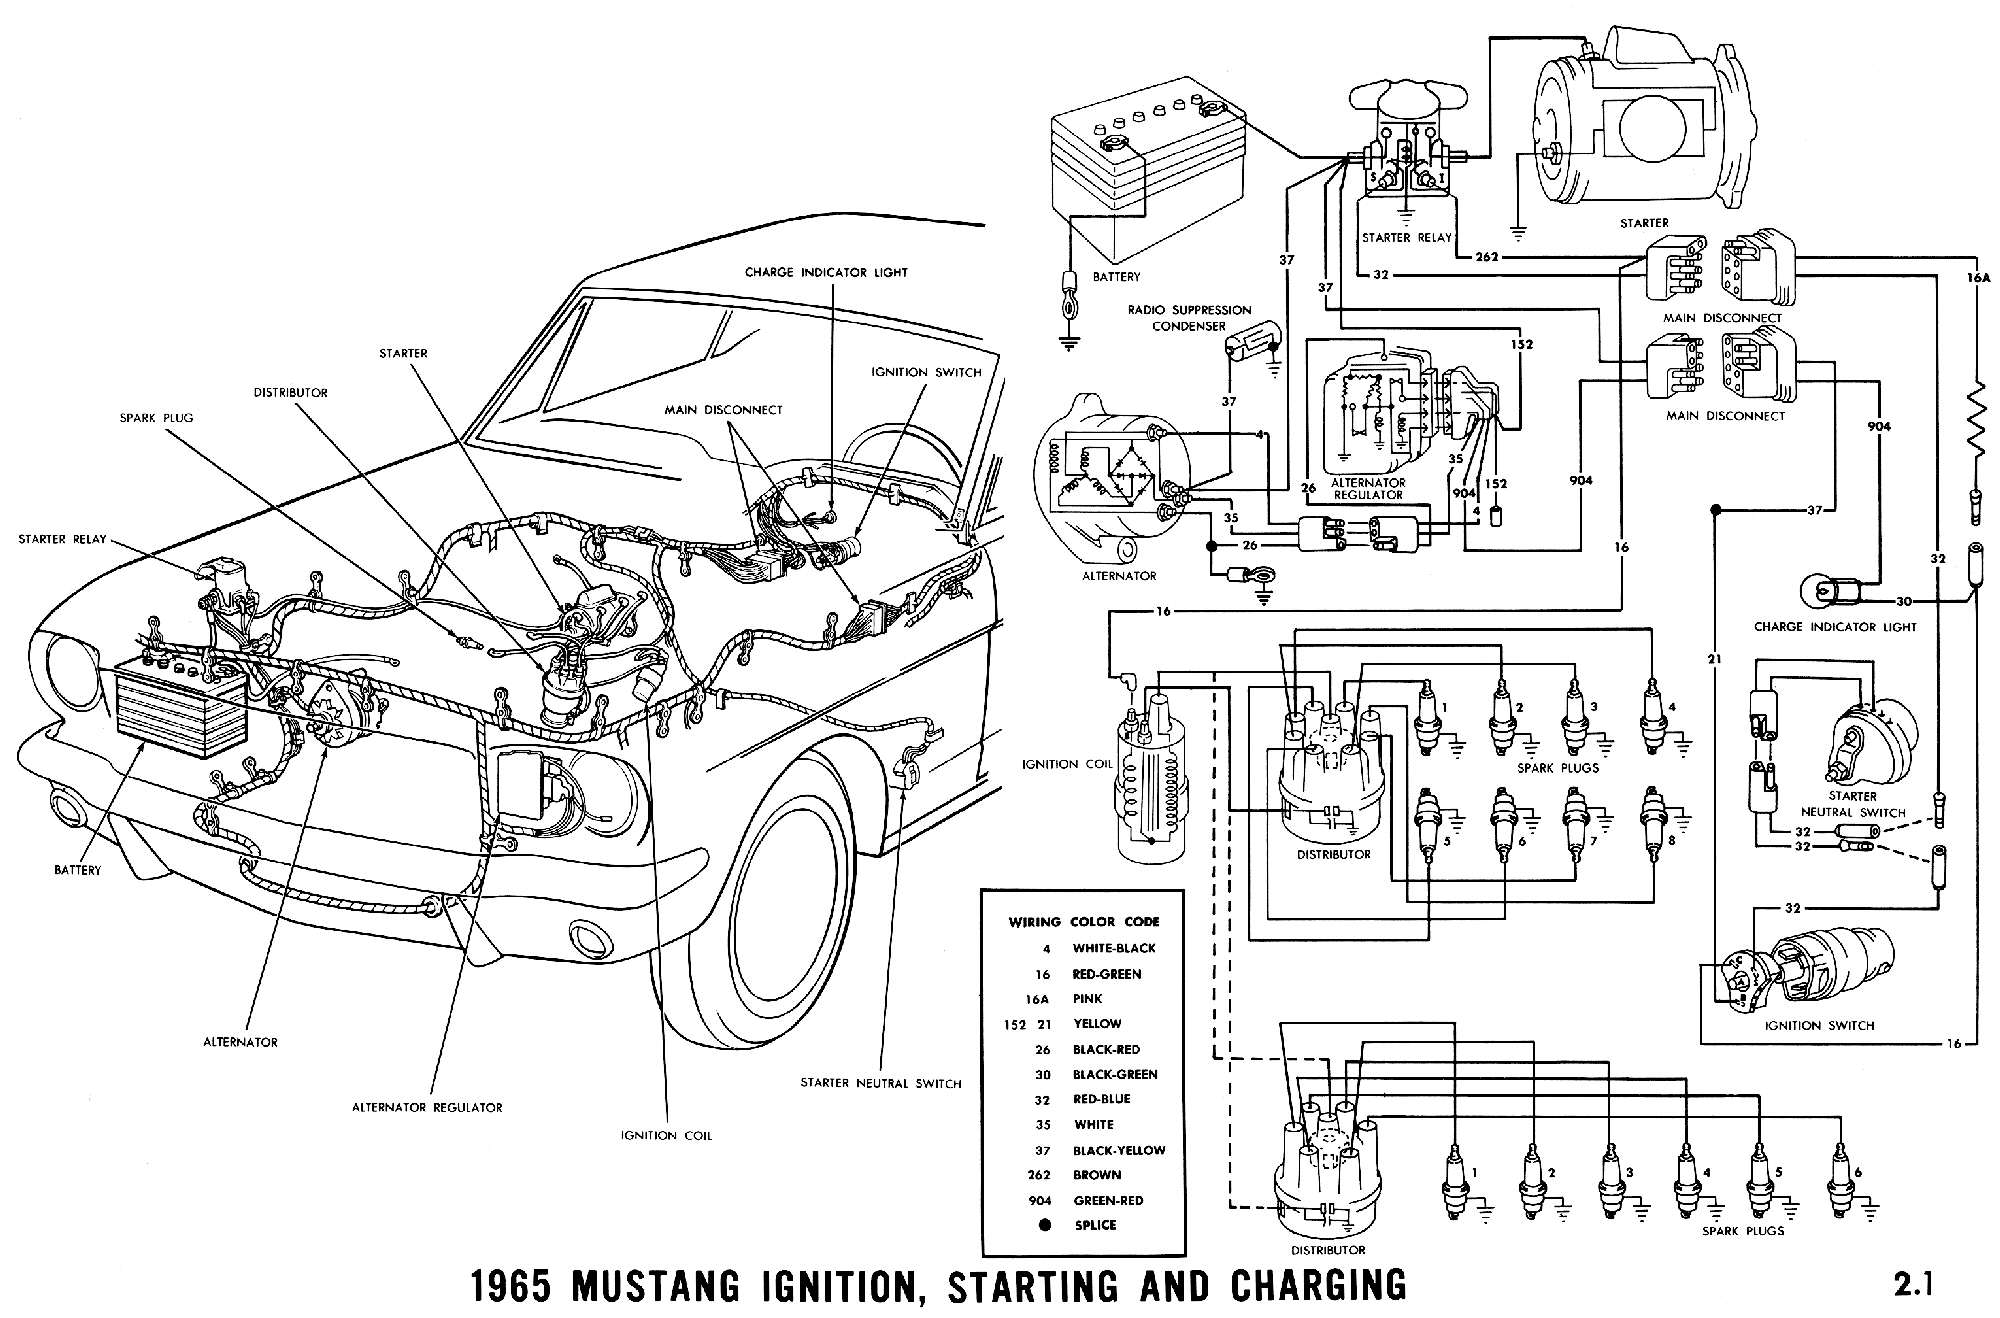 1965c 1965 mustang wiring diagrams average joe restoration 1968 mustang alternator wiring diagram at webbmarketing.co